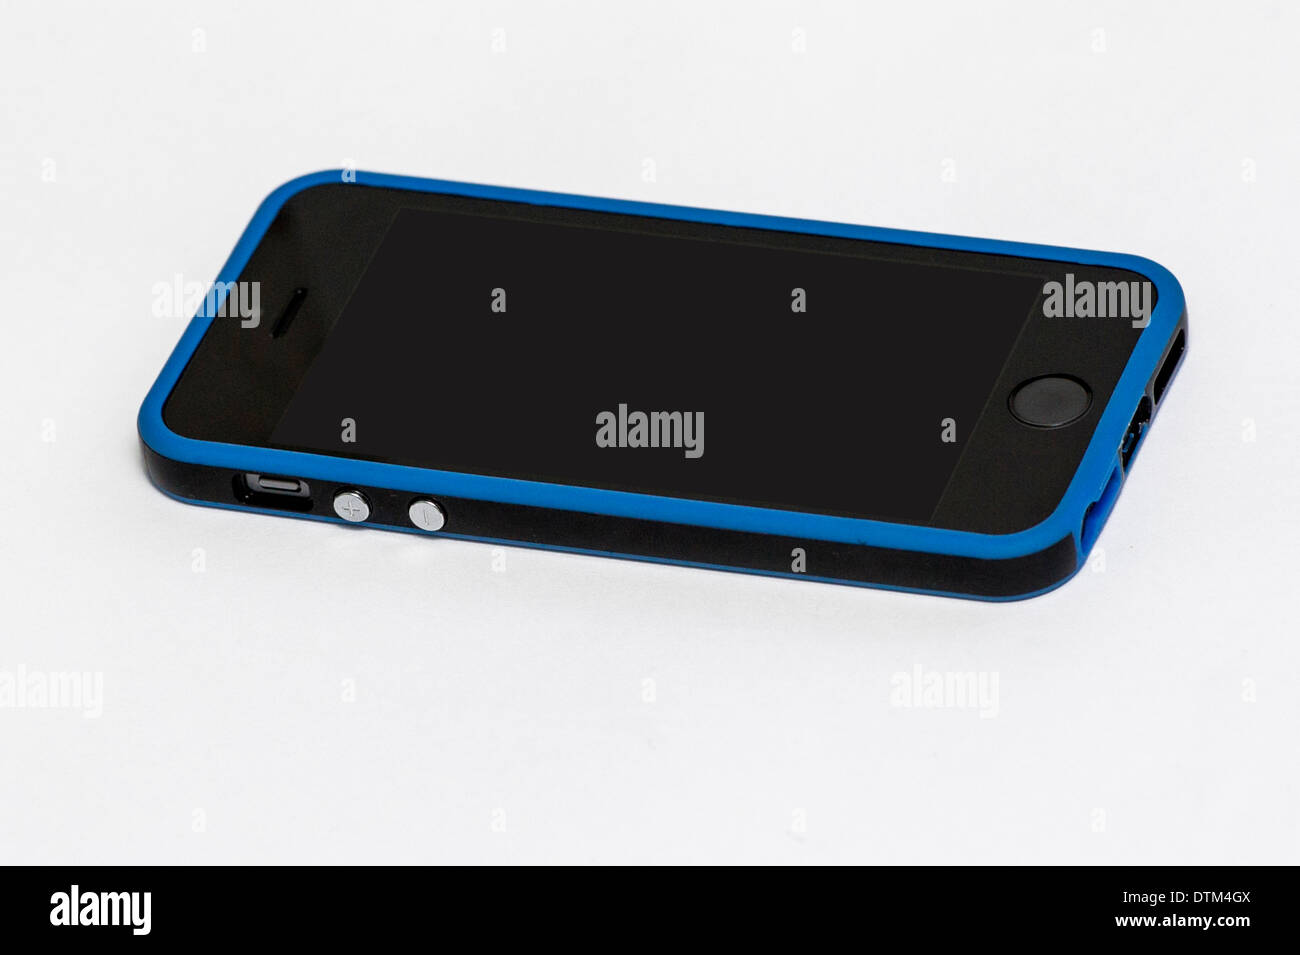 bc73d59db5d6 An Apple iPhone 5S in space grey in a blue and black case Stock ...